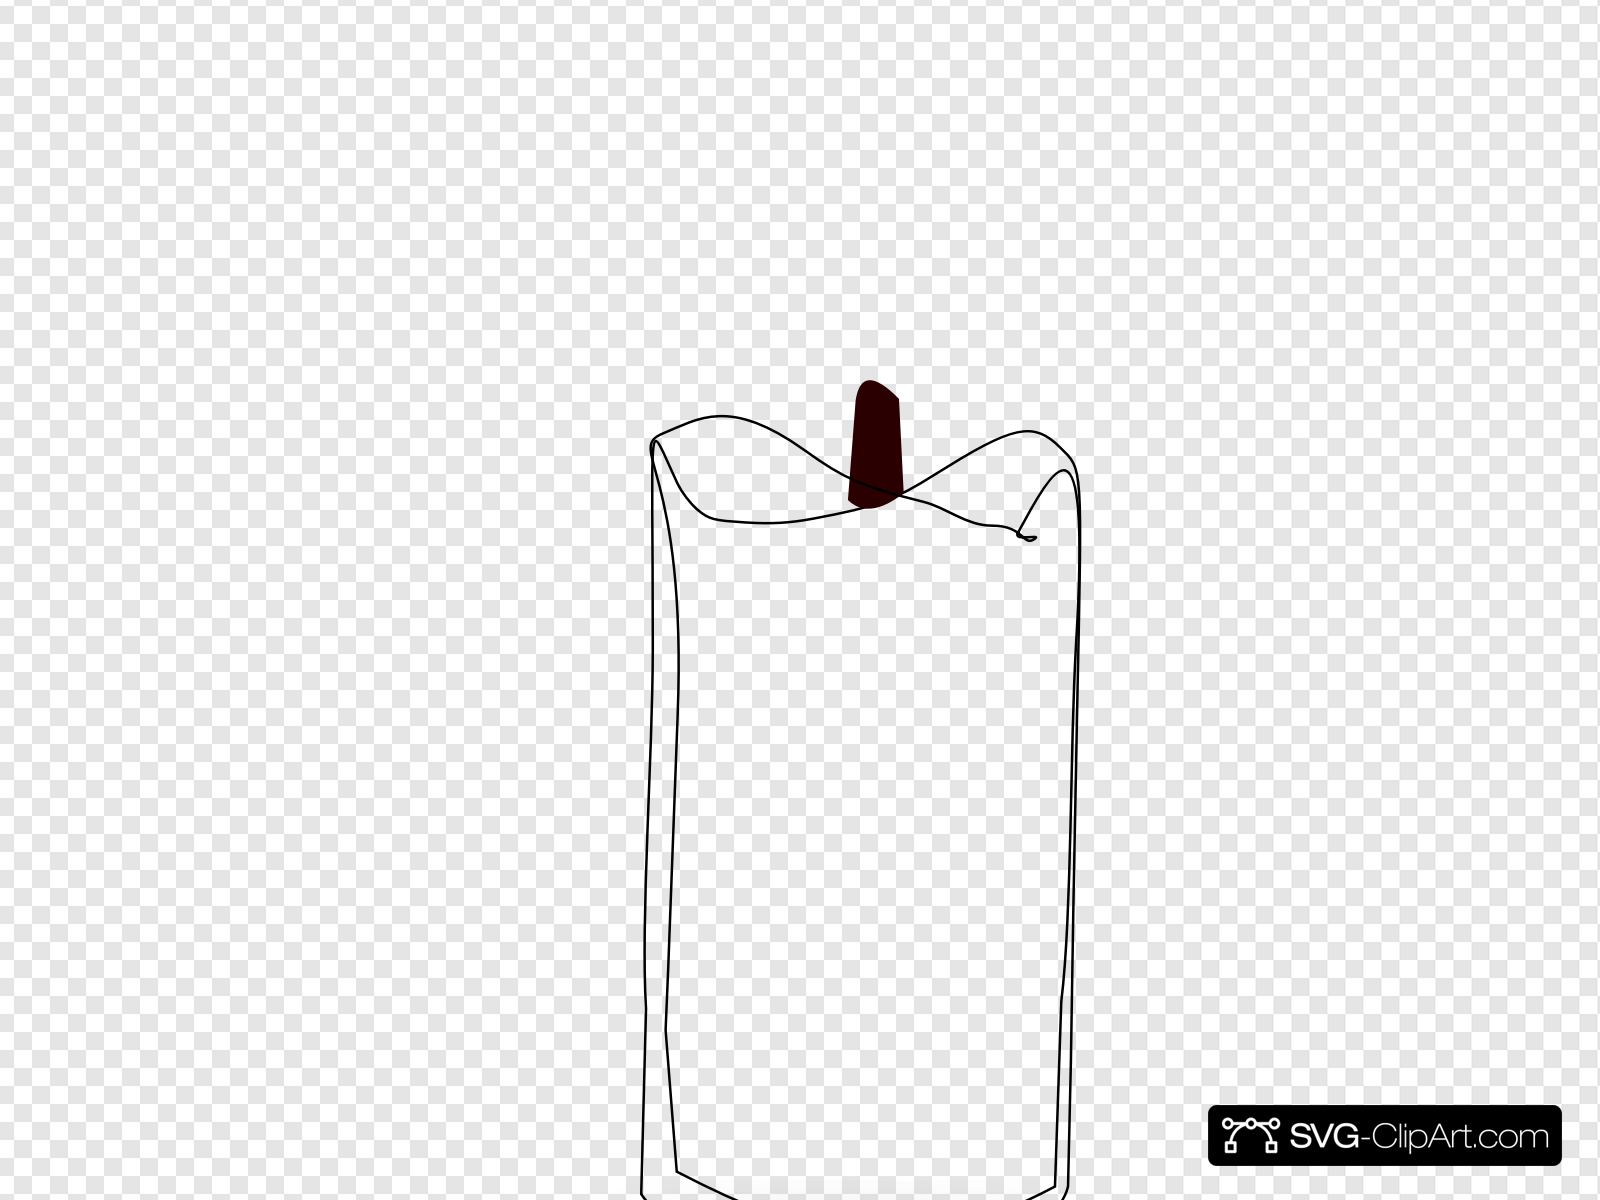 Candle Outline Clip art, Icon and SVG.